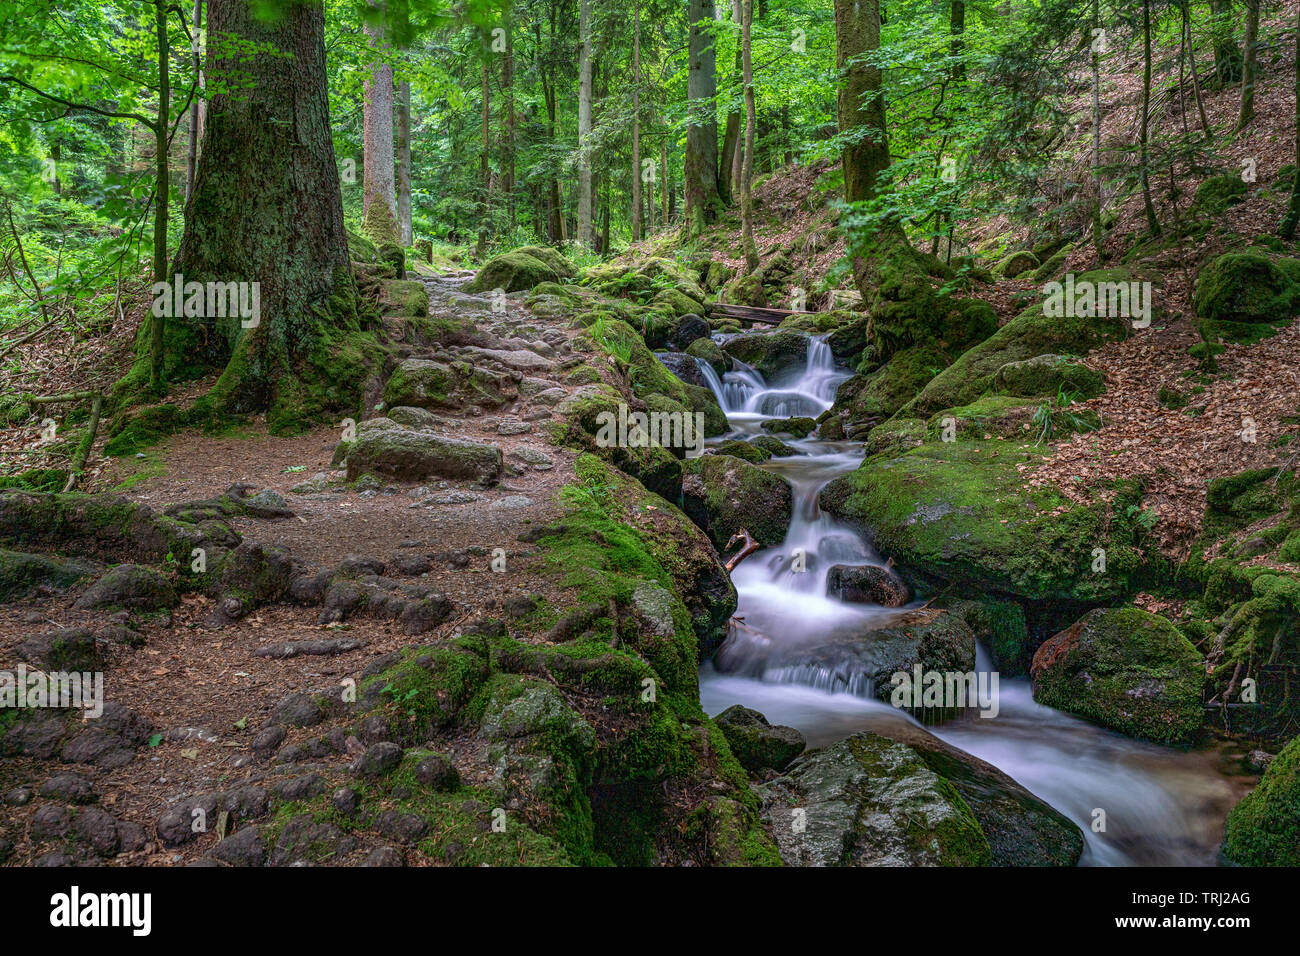 Wild romantic hiking trail along famous Gertelbach waterfalls, Black Forest, Germany - Stock Image